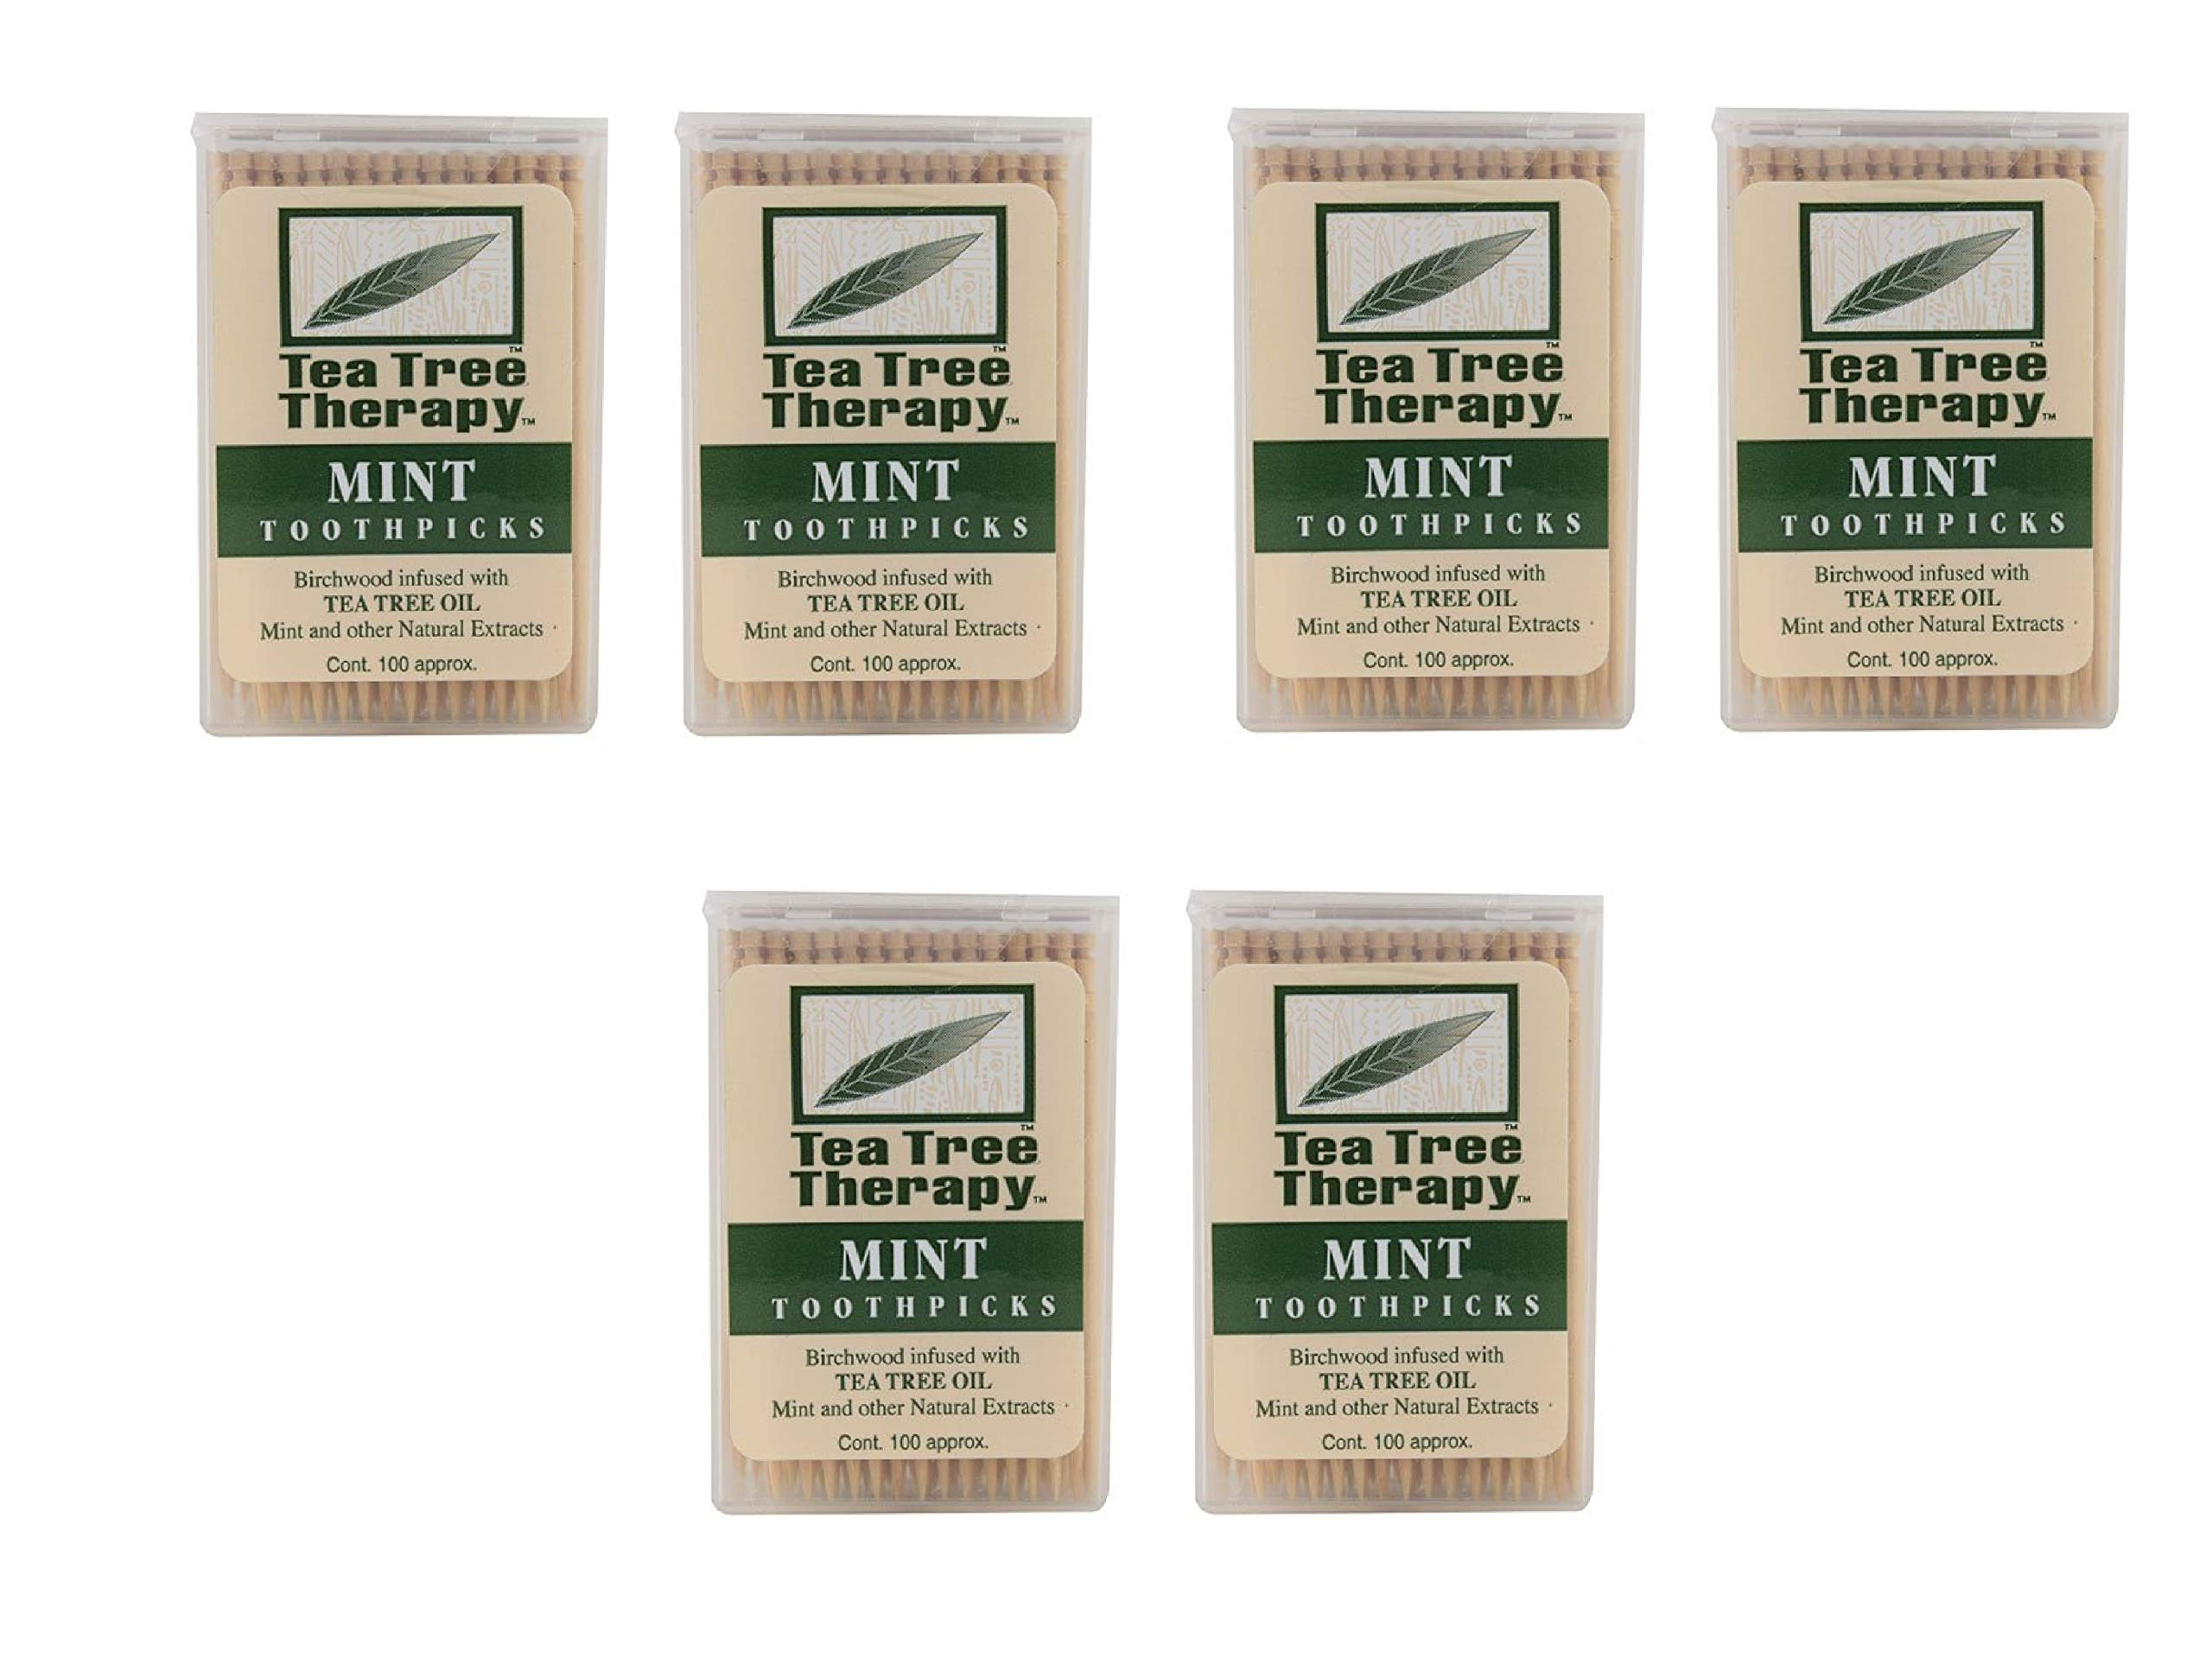 Tea Tree Therapy Mint Toothpicks 200 Count (3 Pack)